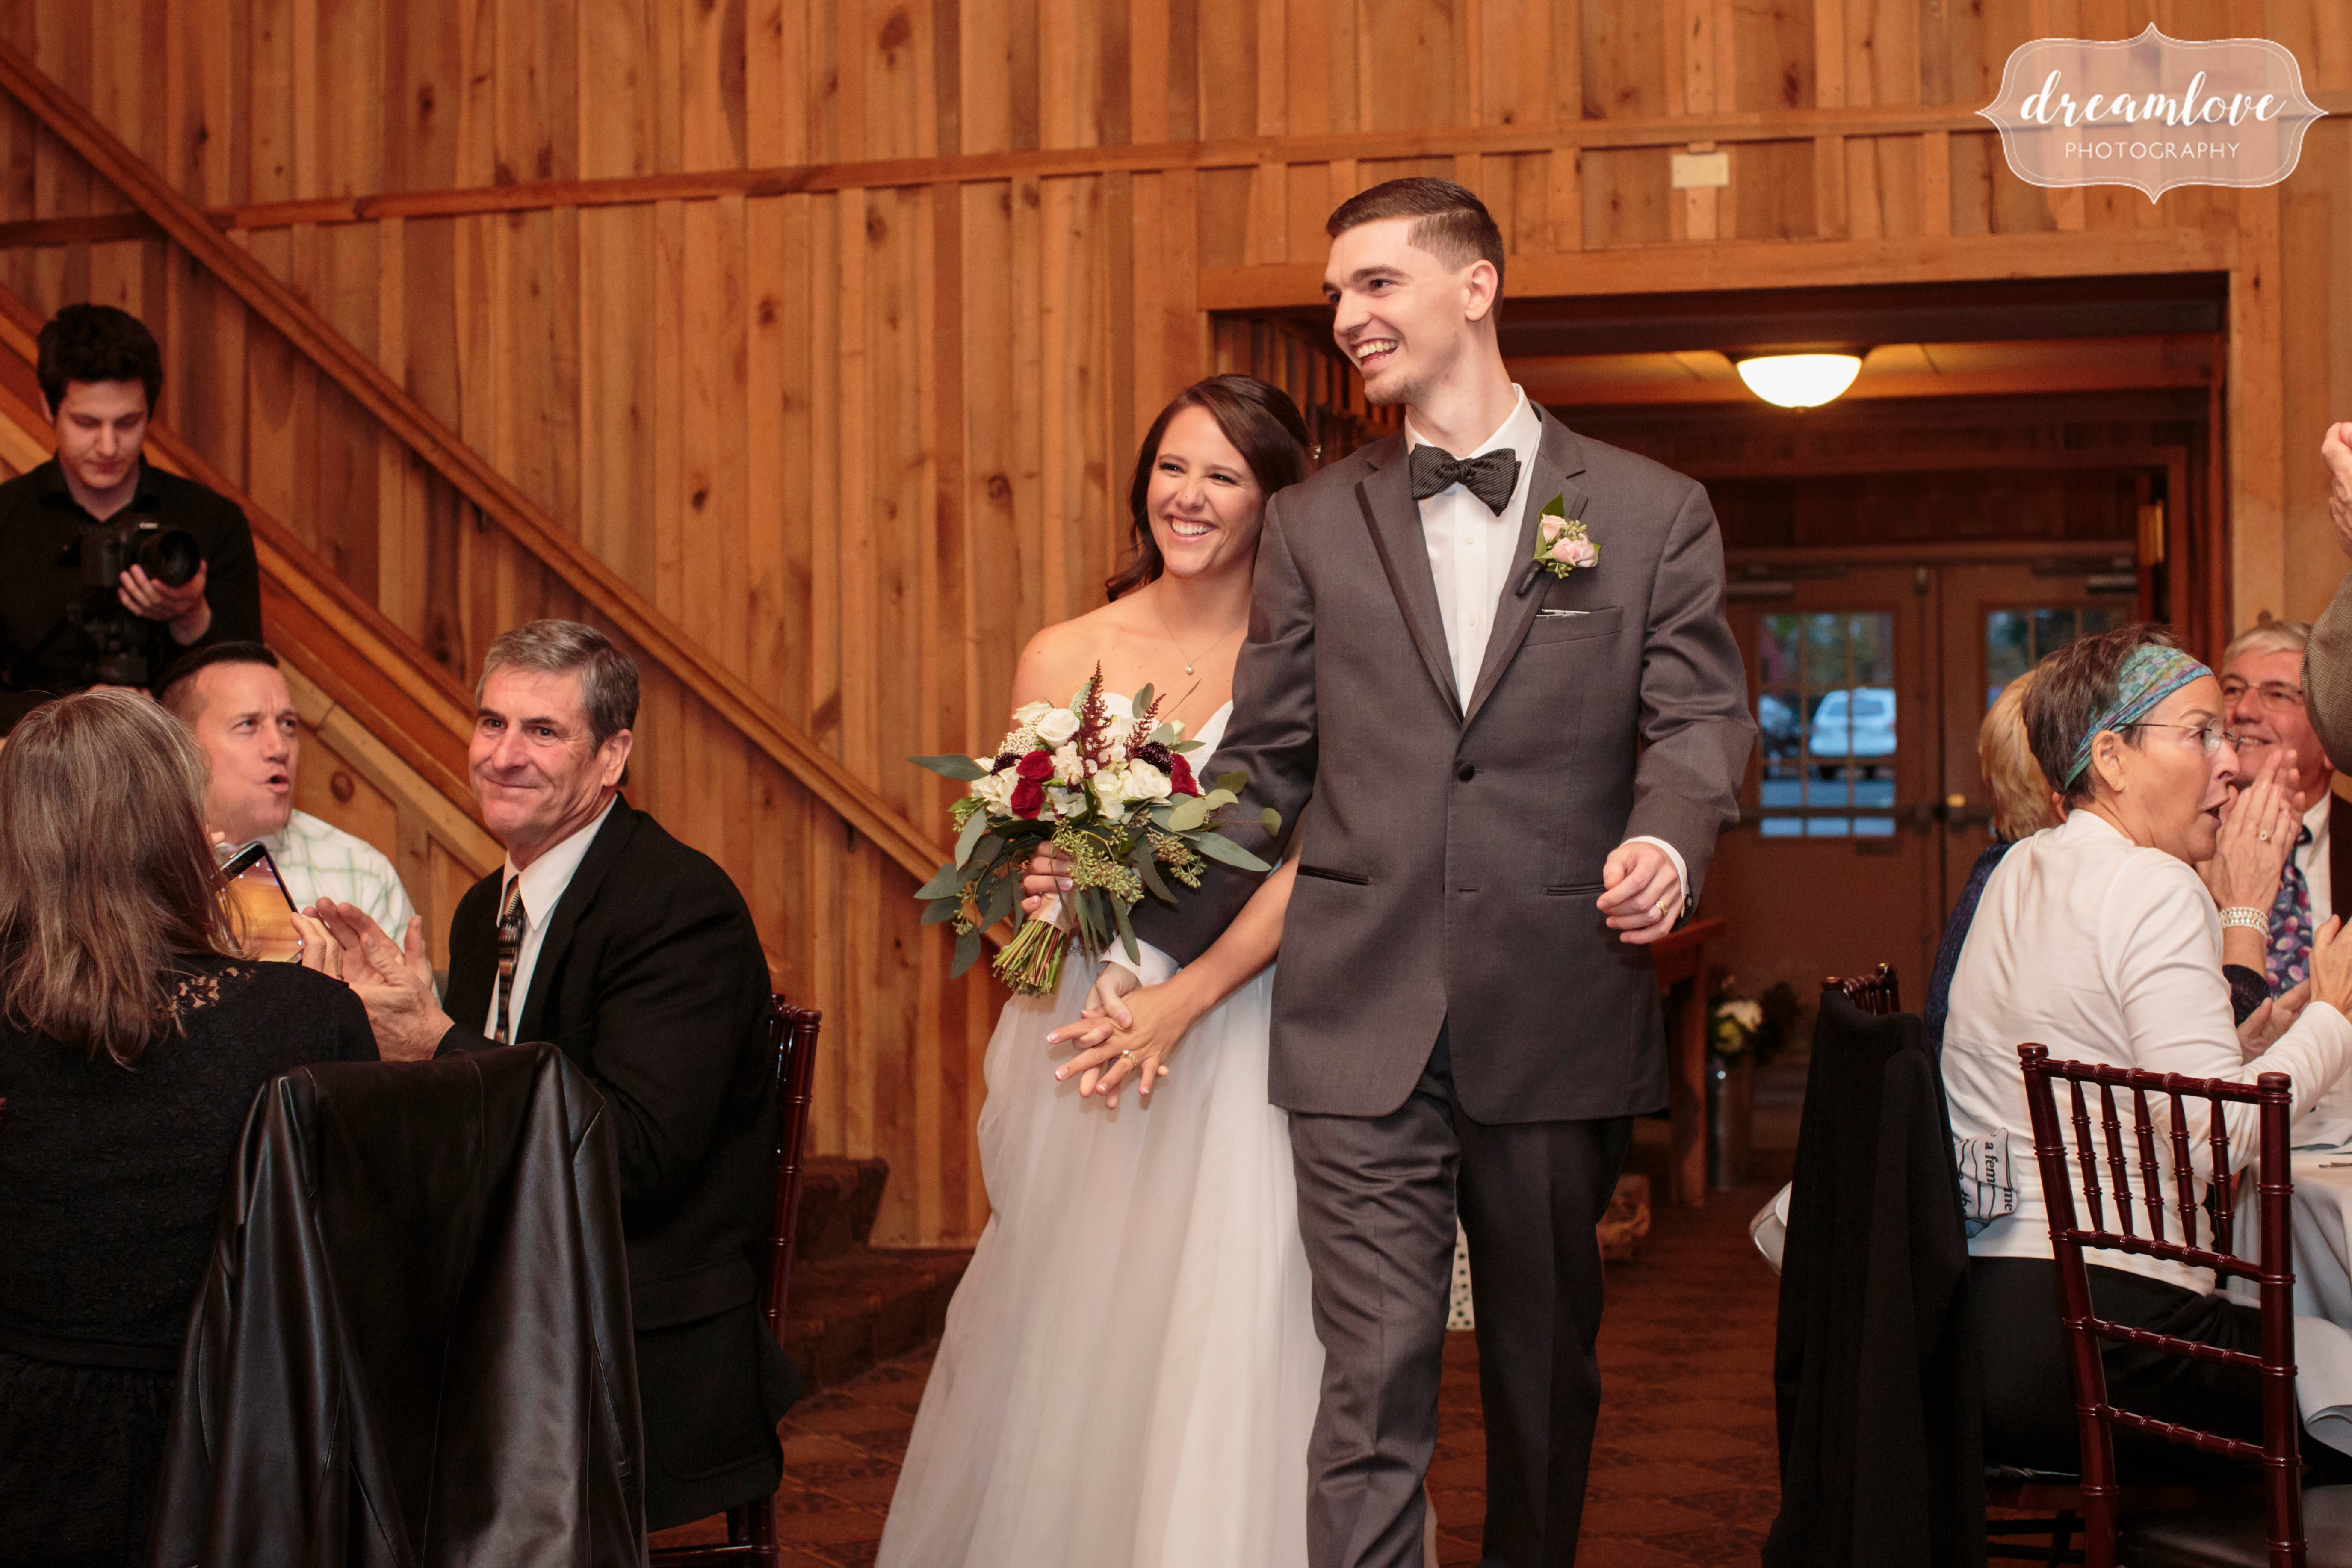 The bride and groom enter the rustic barn at the Crystal Lake Pavilion venue in CT.